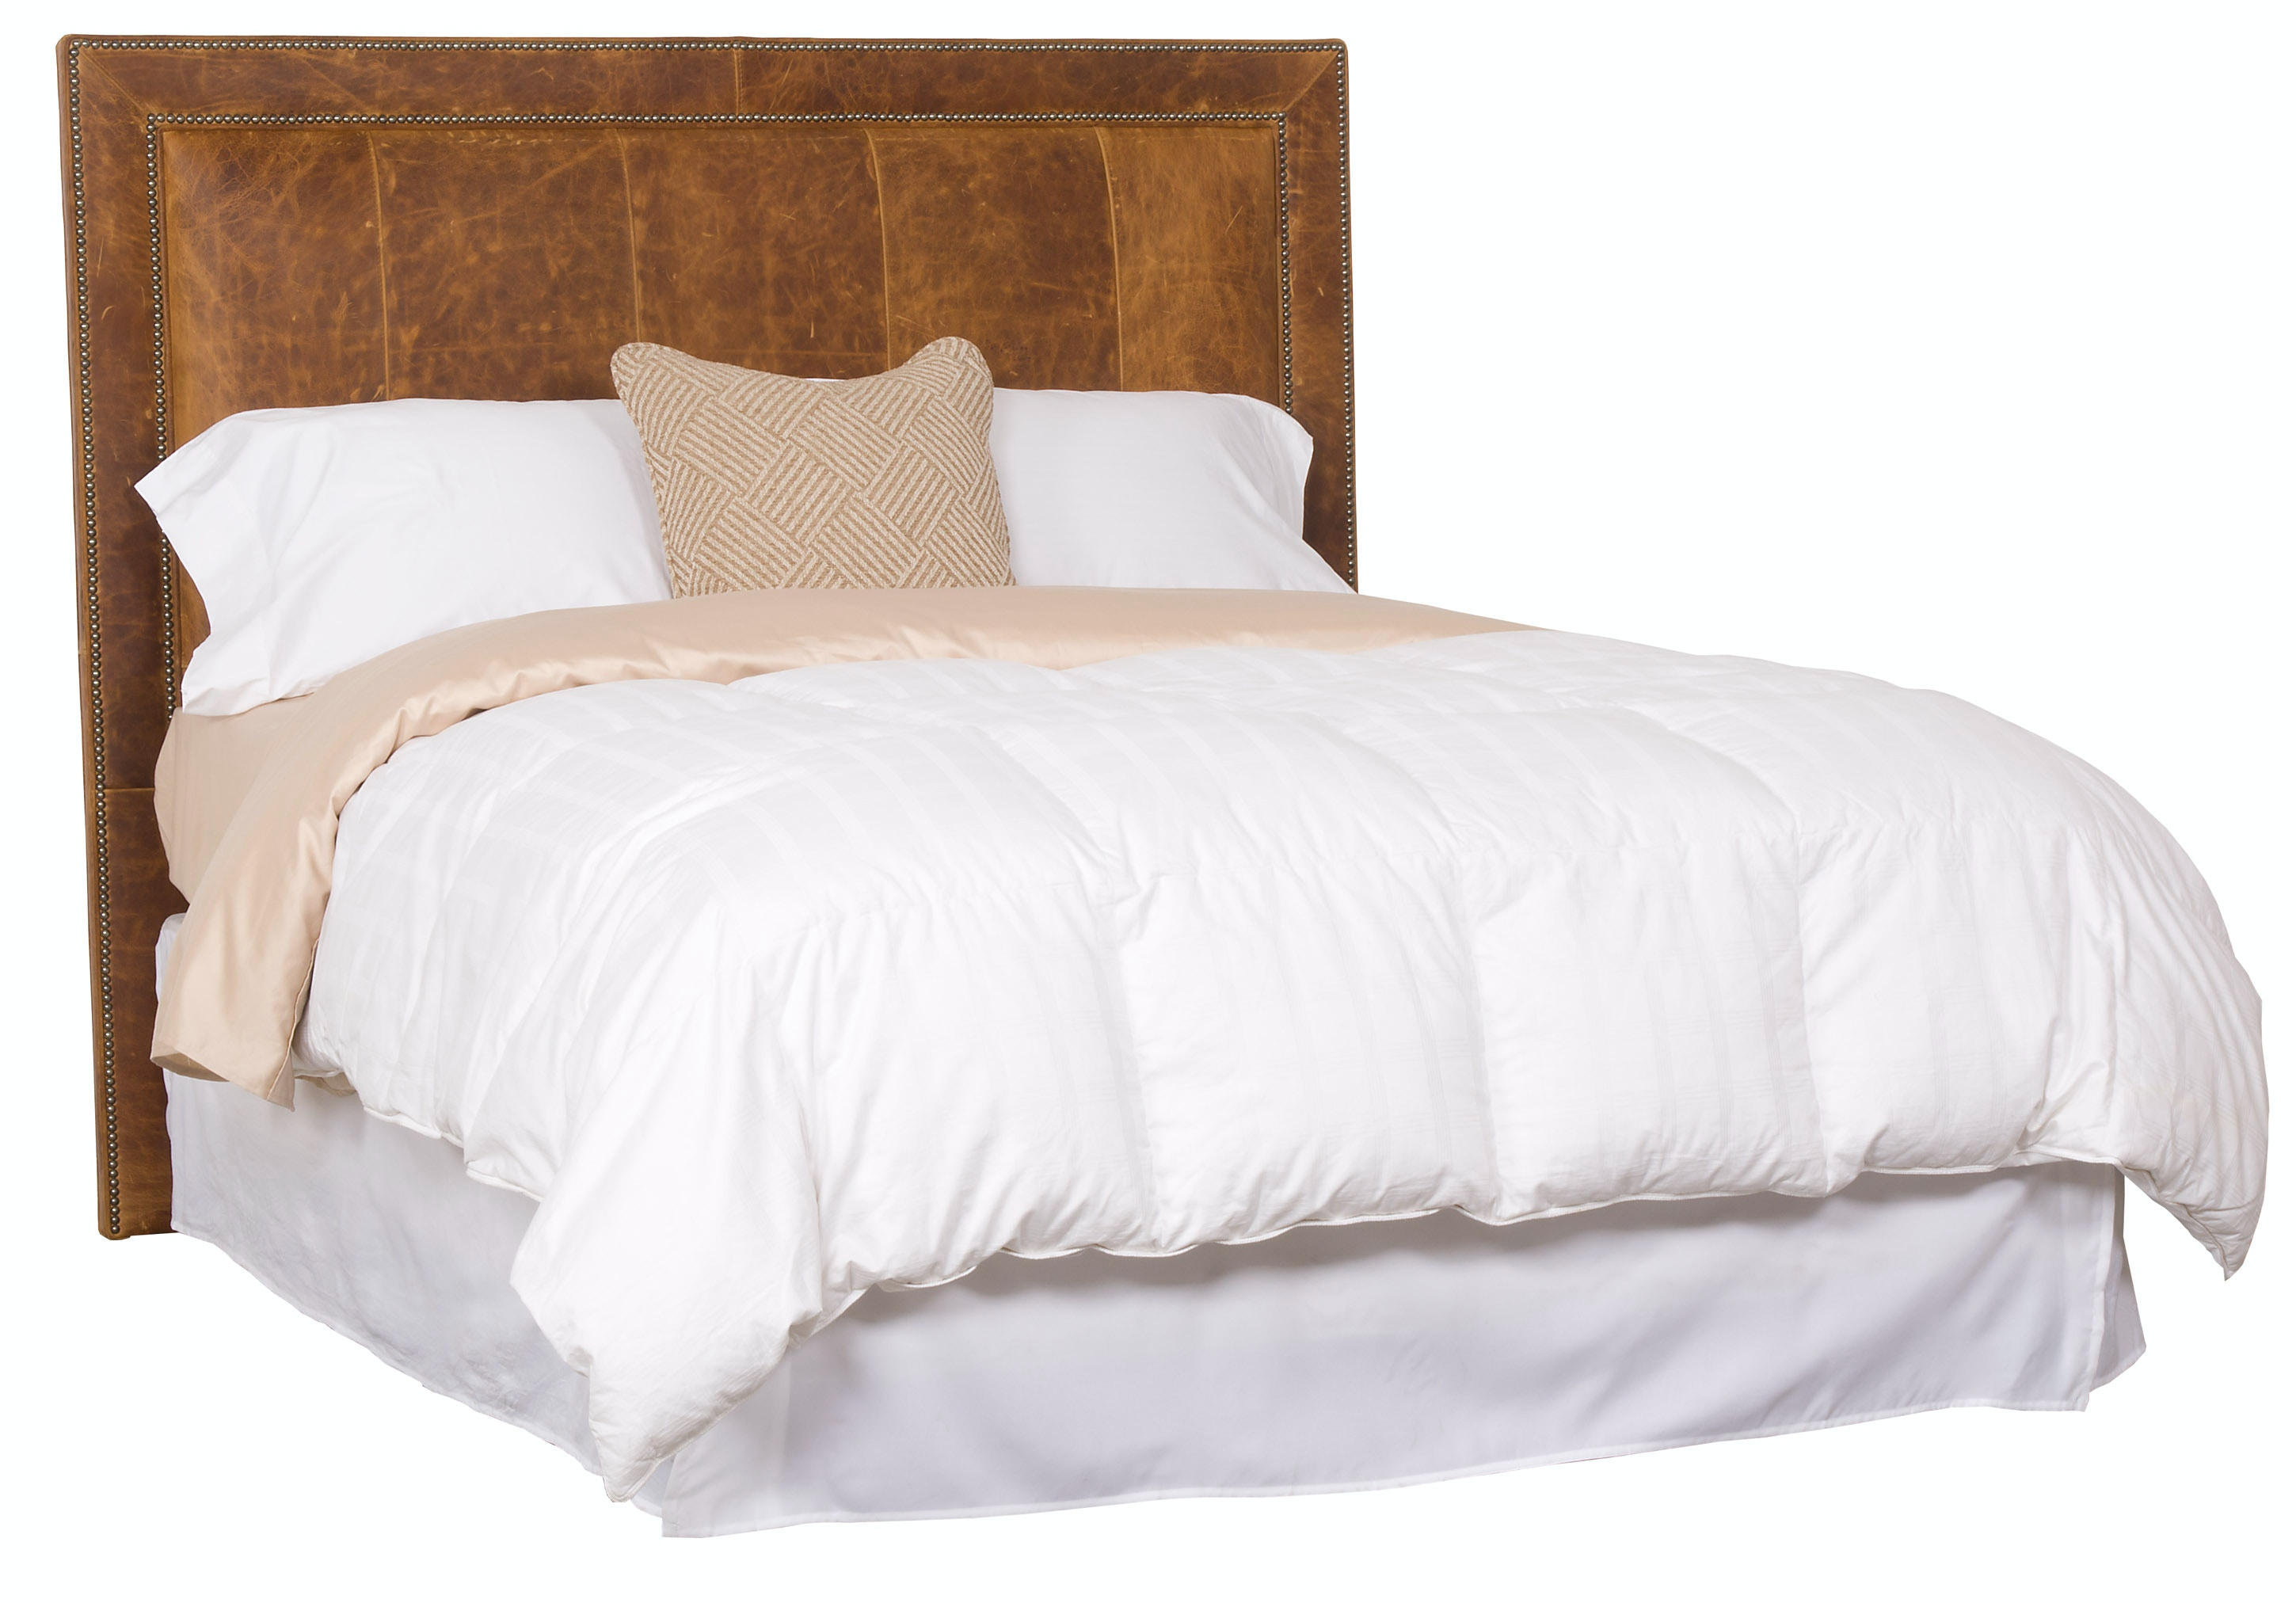 Vanguard Furniture Hillary / Hank Queen Headboard 503BQ H